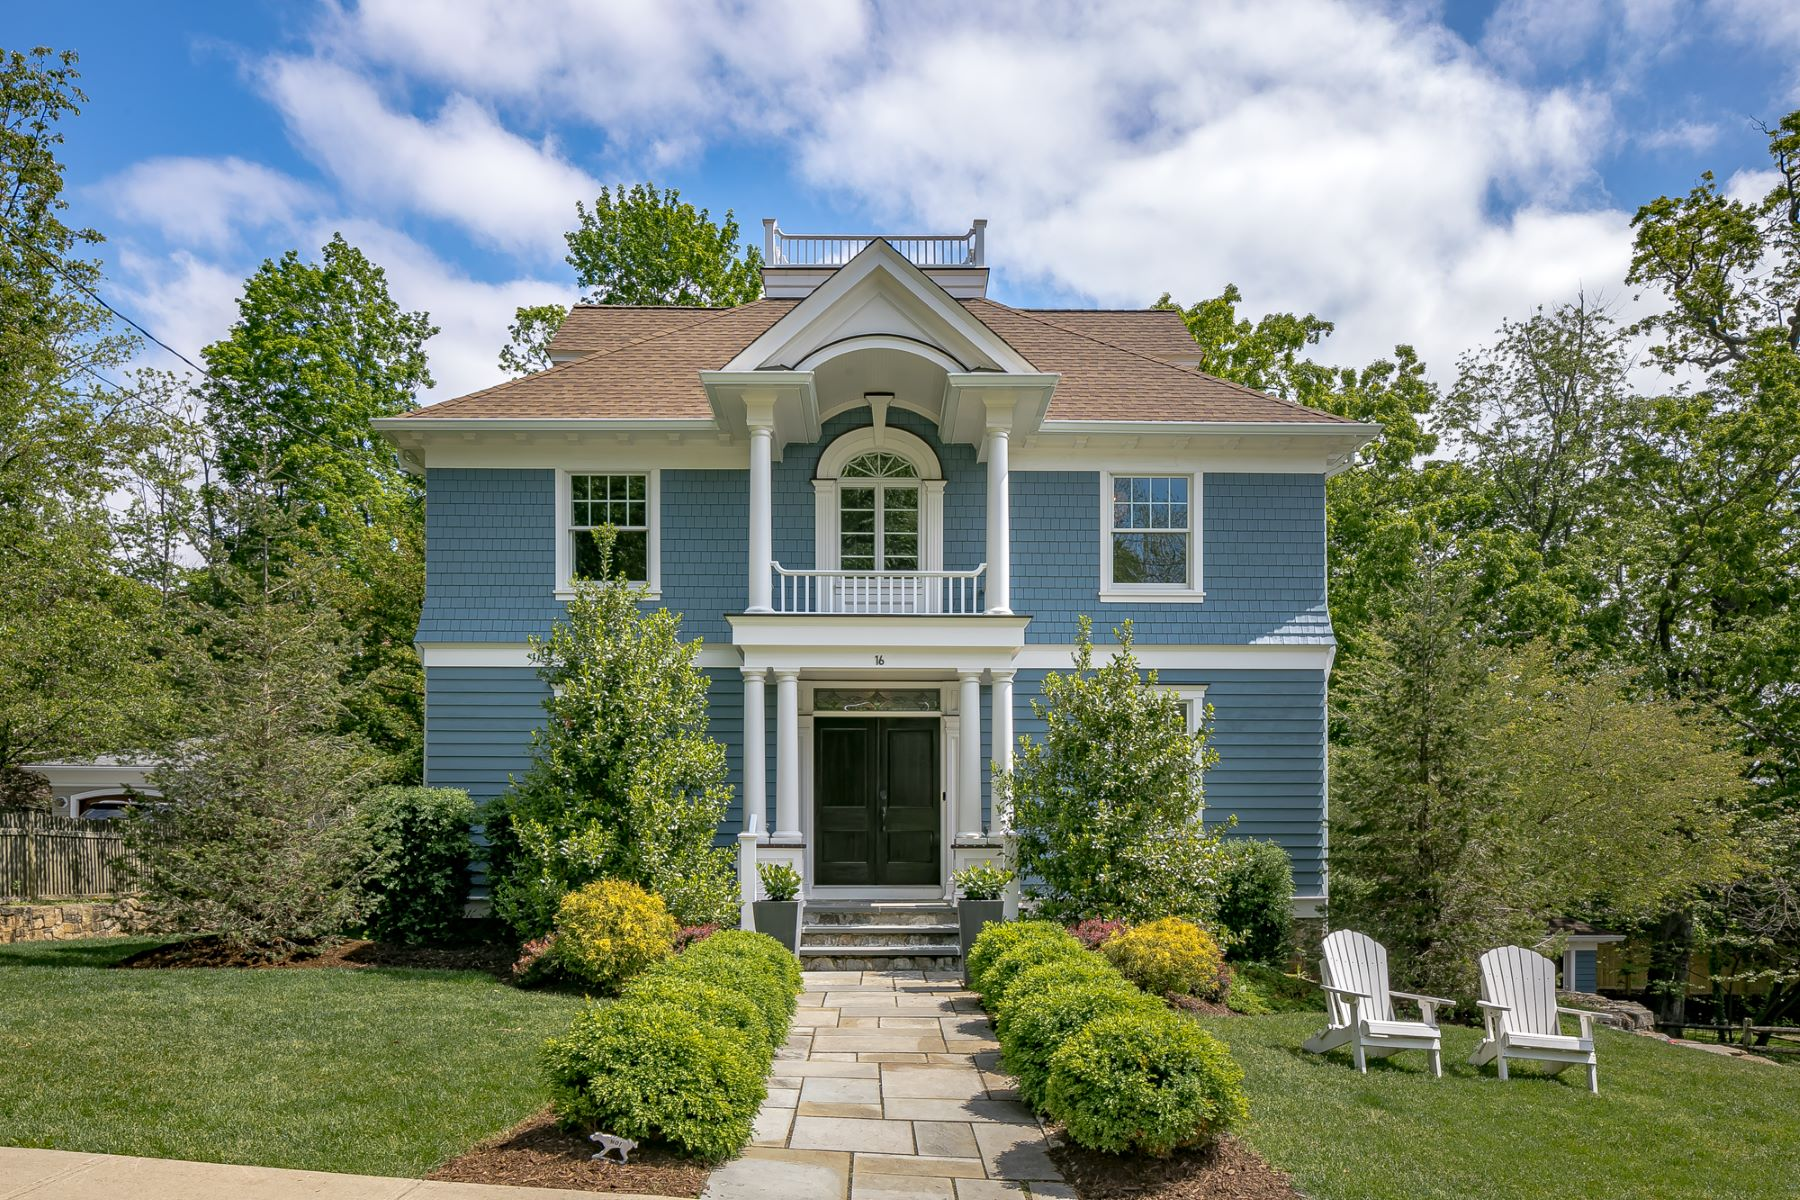 Single Family Homes for Sale at Stately Custom Colonial 16 Vinton Road Madison, New Jersey 07940 United States